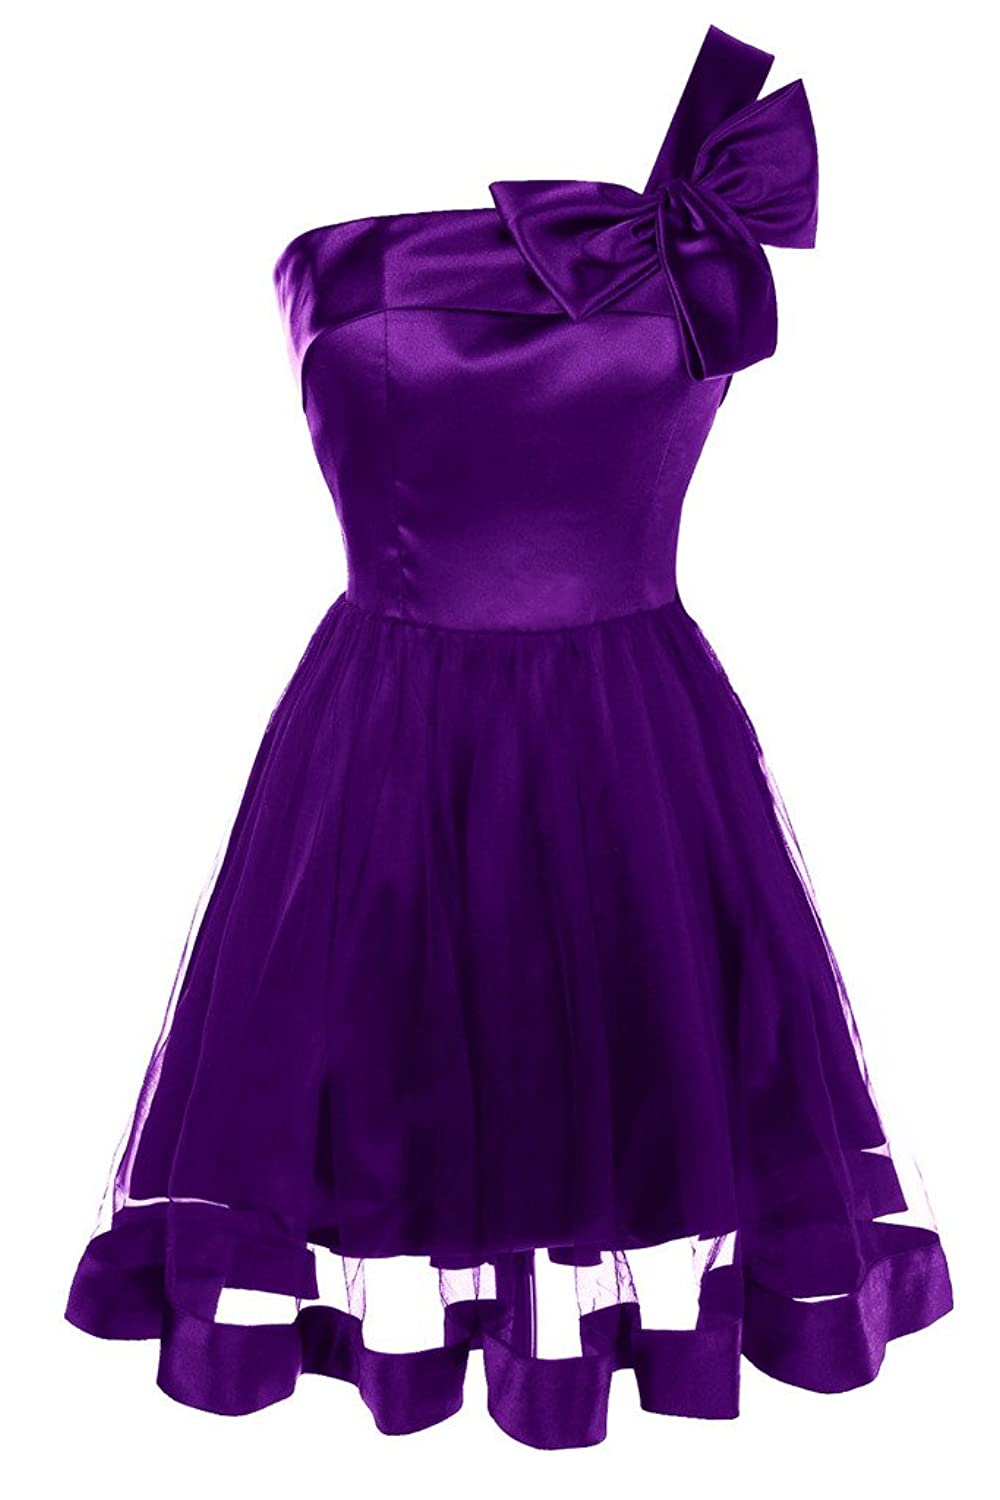 Topdress Women's One Shoulder Short Prom Dress with Bow Homecoming Dresses